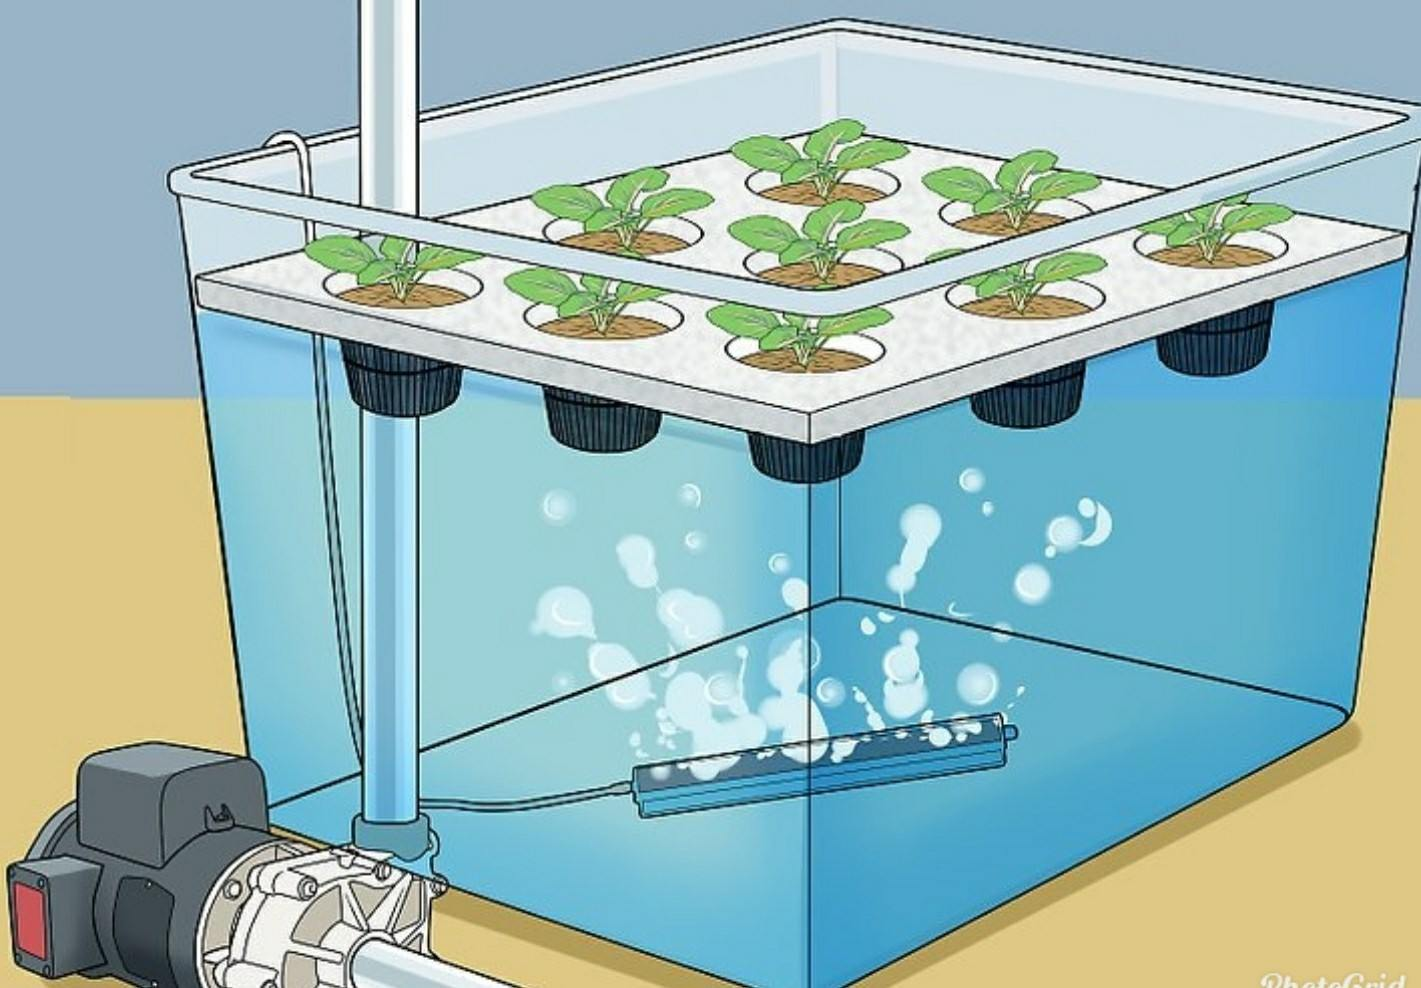 How To Build A Hydroponic Grow Box? - Sumo Gardener